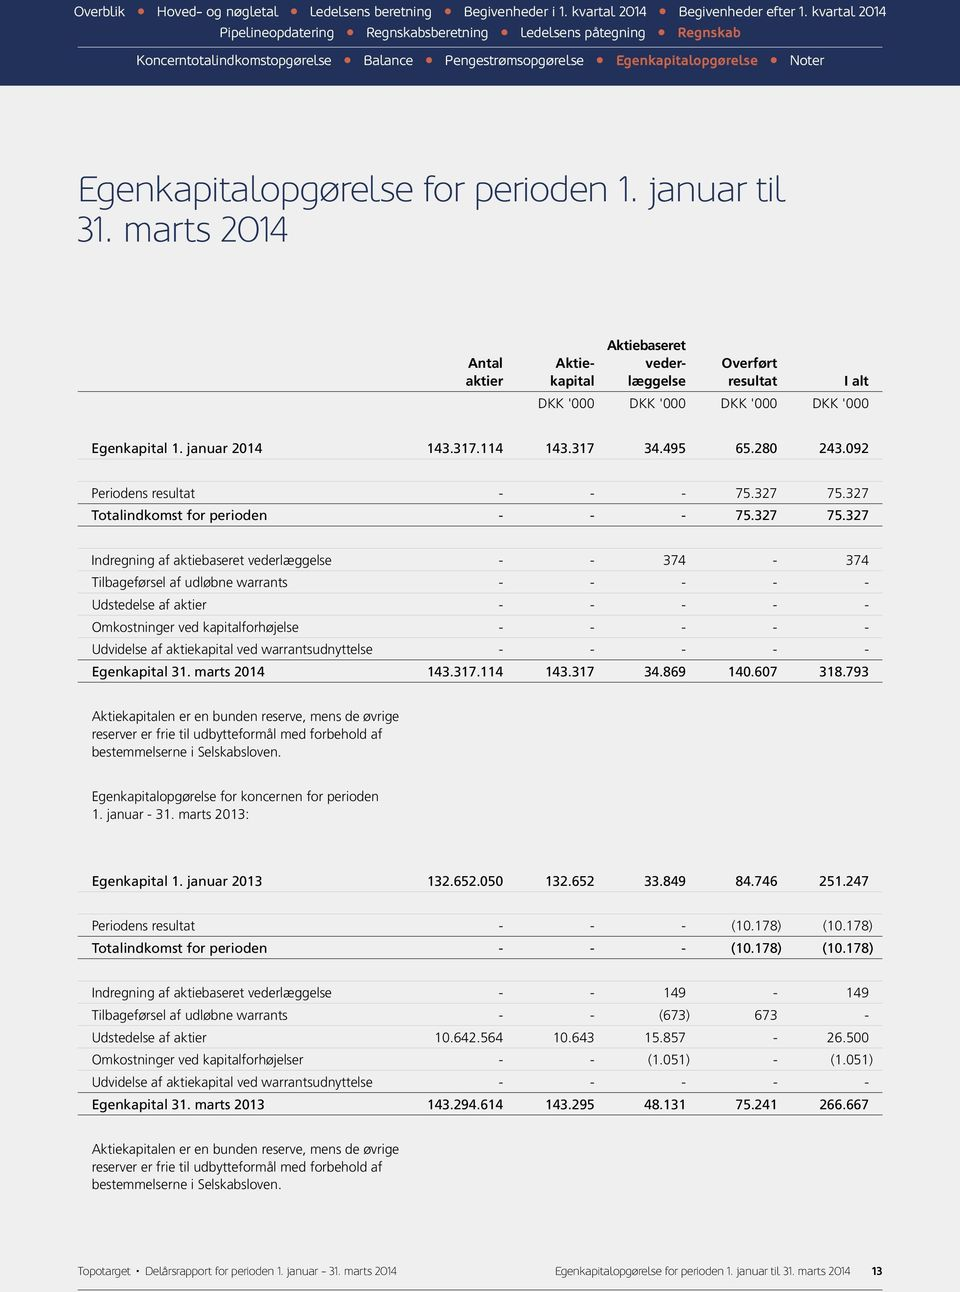 327 Totalindkomst for perioden - - - 75.327 75.